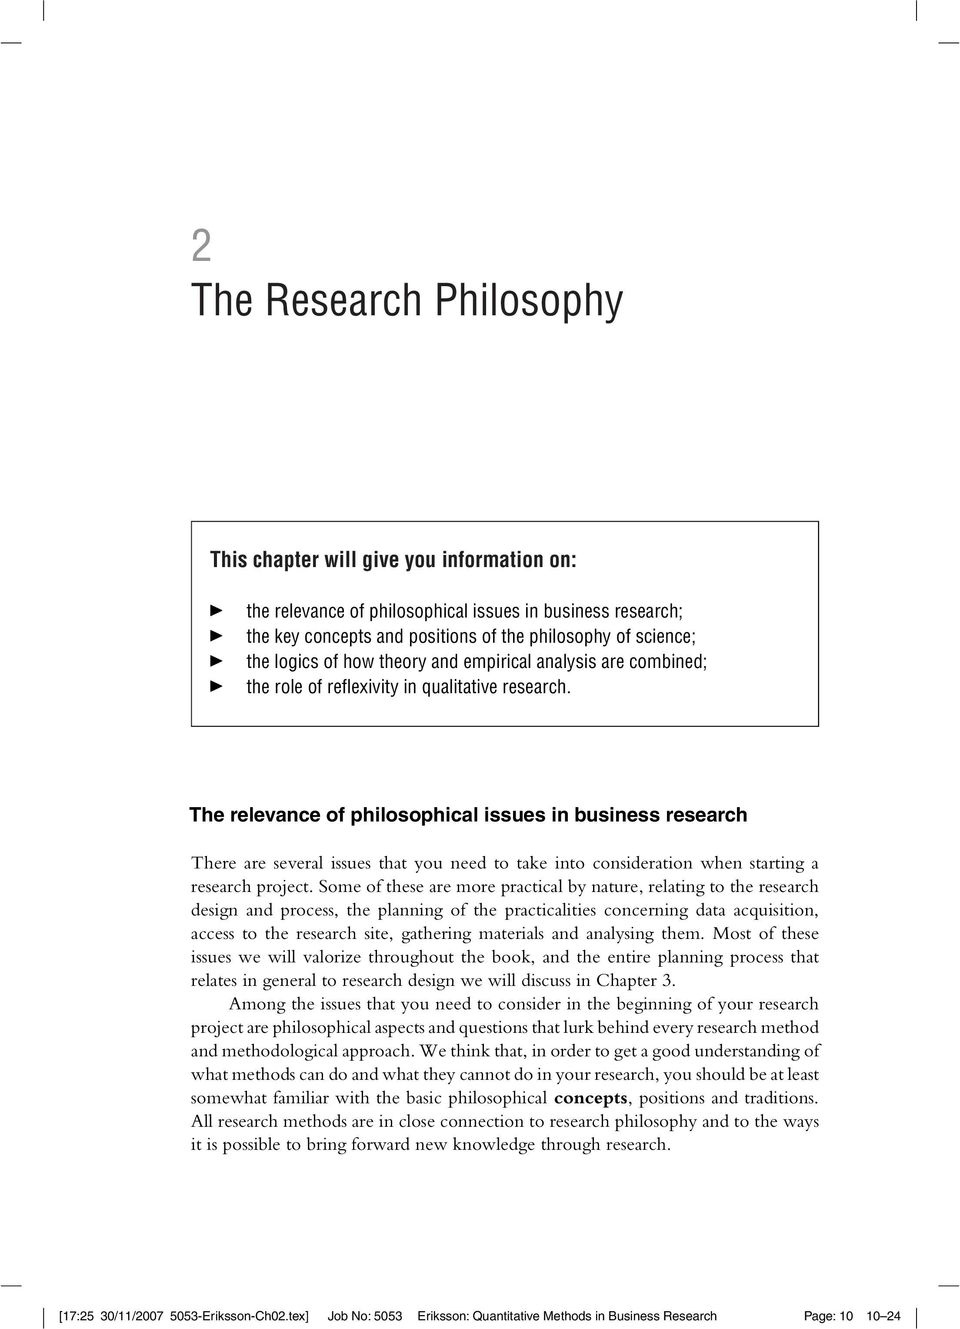 The relevance of philosophical issues in business research There are several issues that you need to take into consideration when starting a research project.